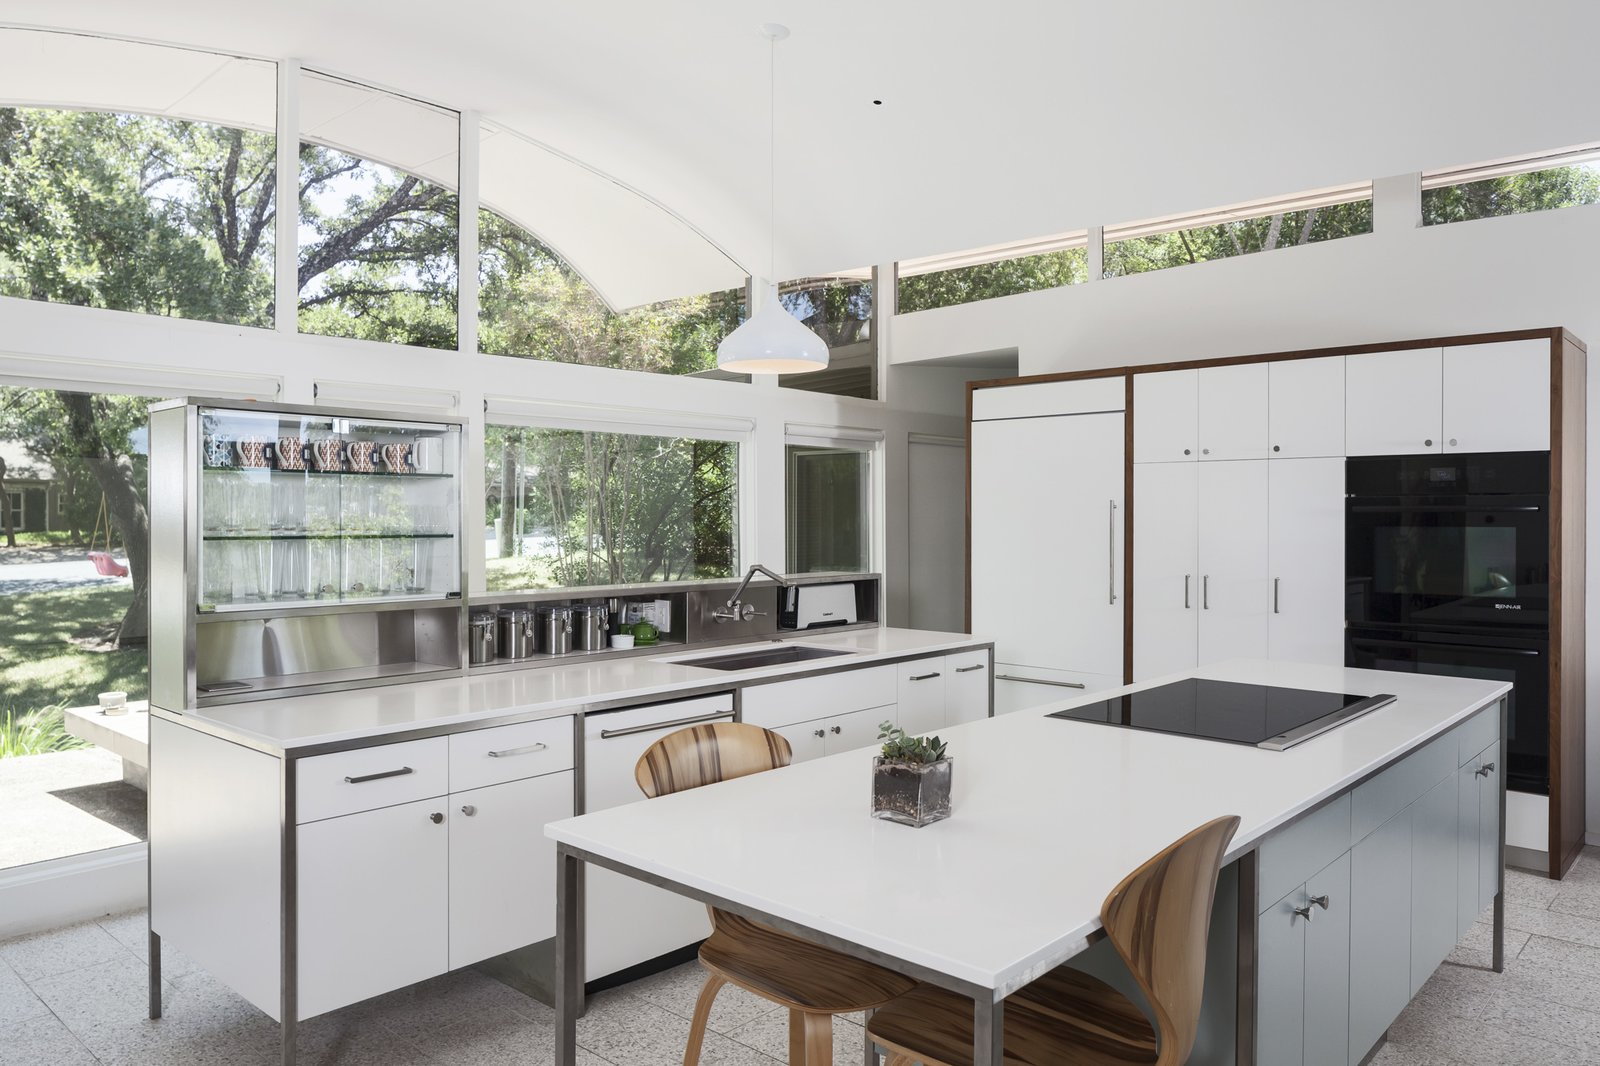 Tagged: Kitchen, White Cabinet, Metal Backsplashe, and Ceramic Tile Floor. Butter Fly House : A. D. Stenger by Creede Fitch